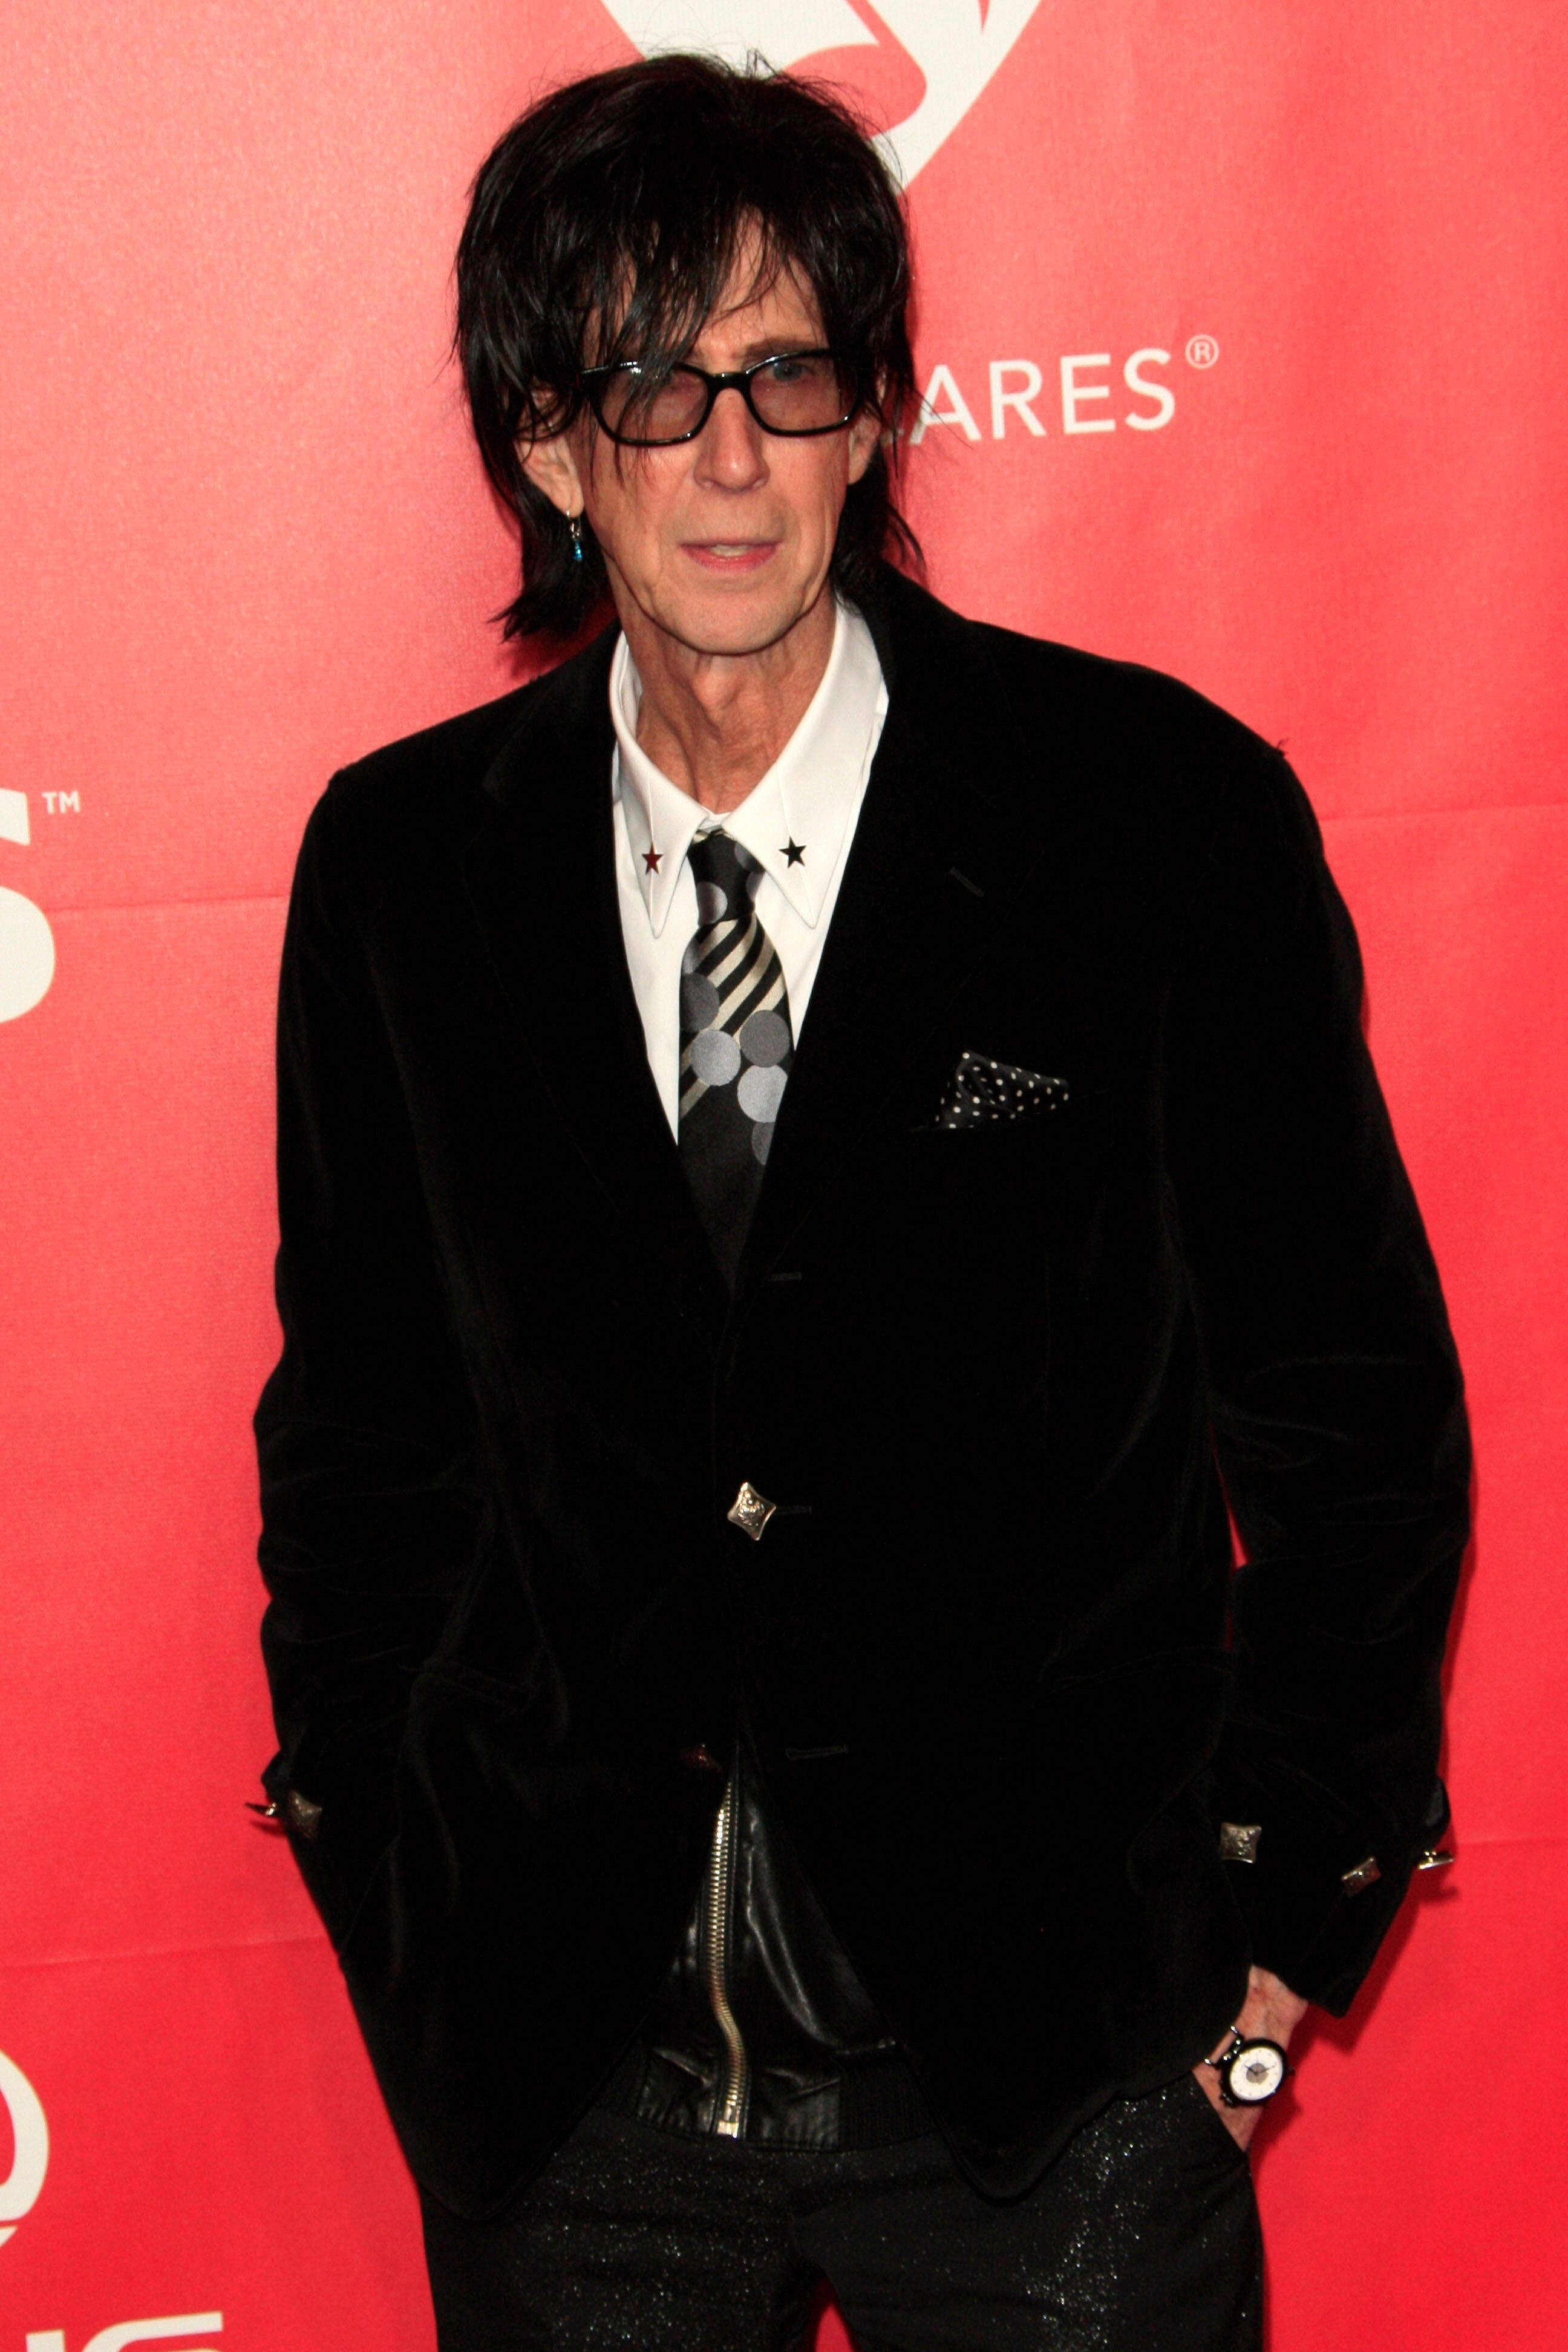 Ric Ocasek, Frontman For Hitmakers The Cars, Dies